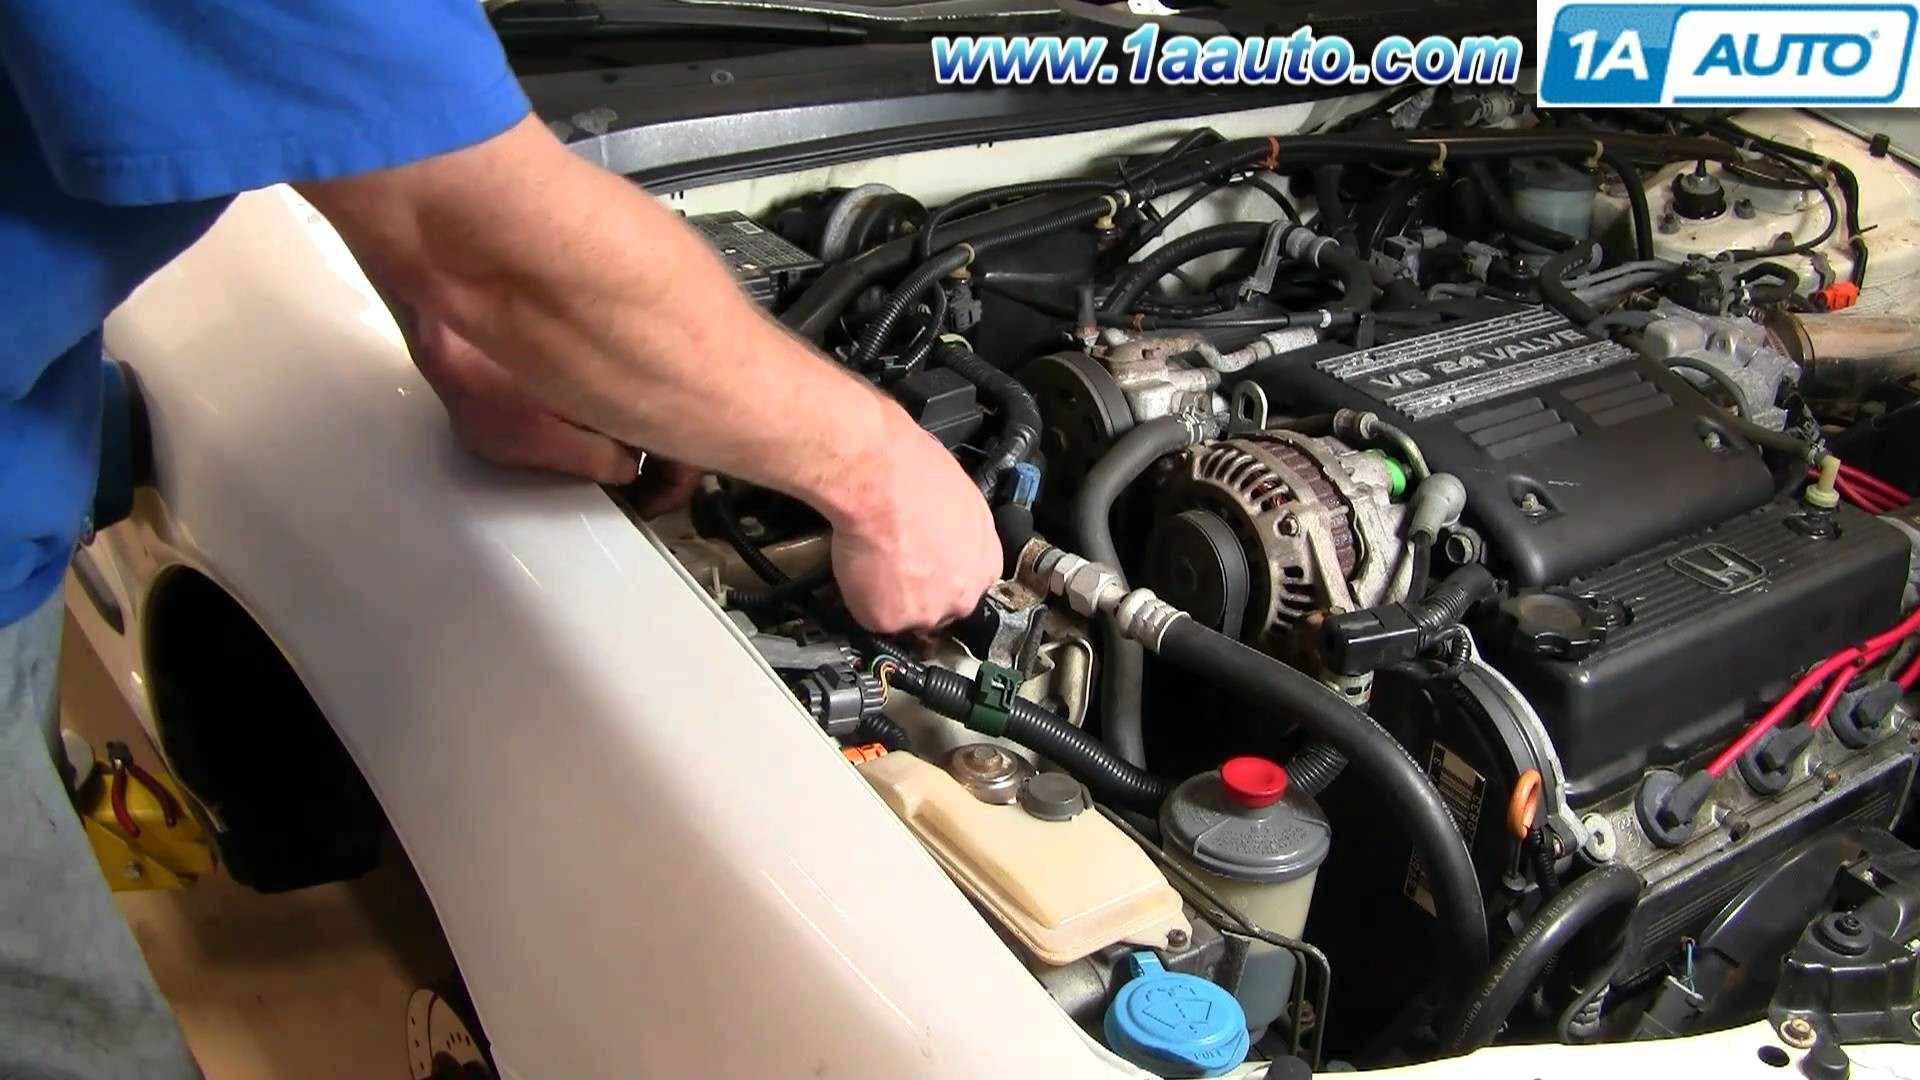 1990 Honda Accord Parts Diagram How To Install Replace Abs Sensor And  Harness Honda Accord Odyssey